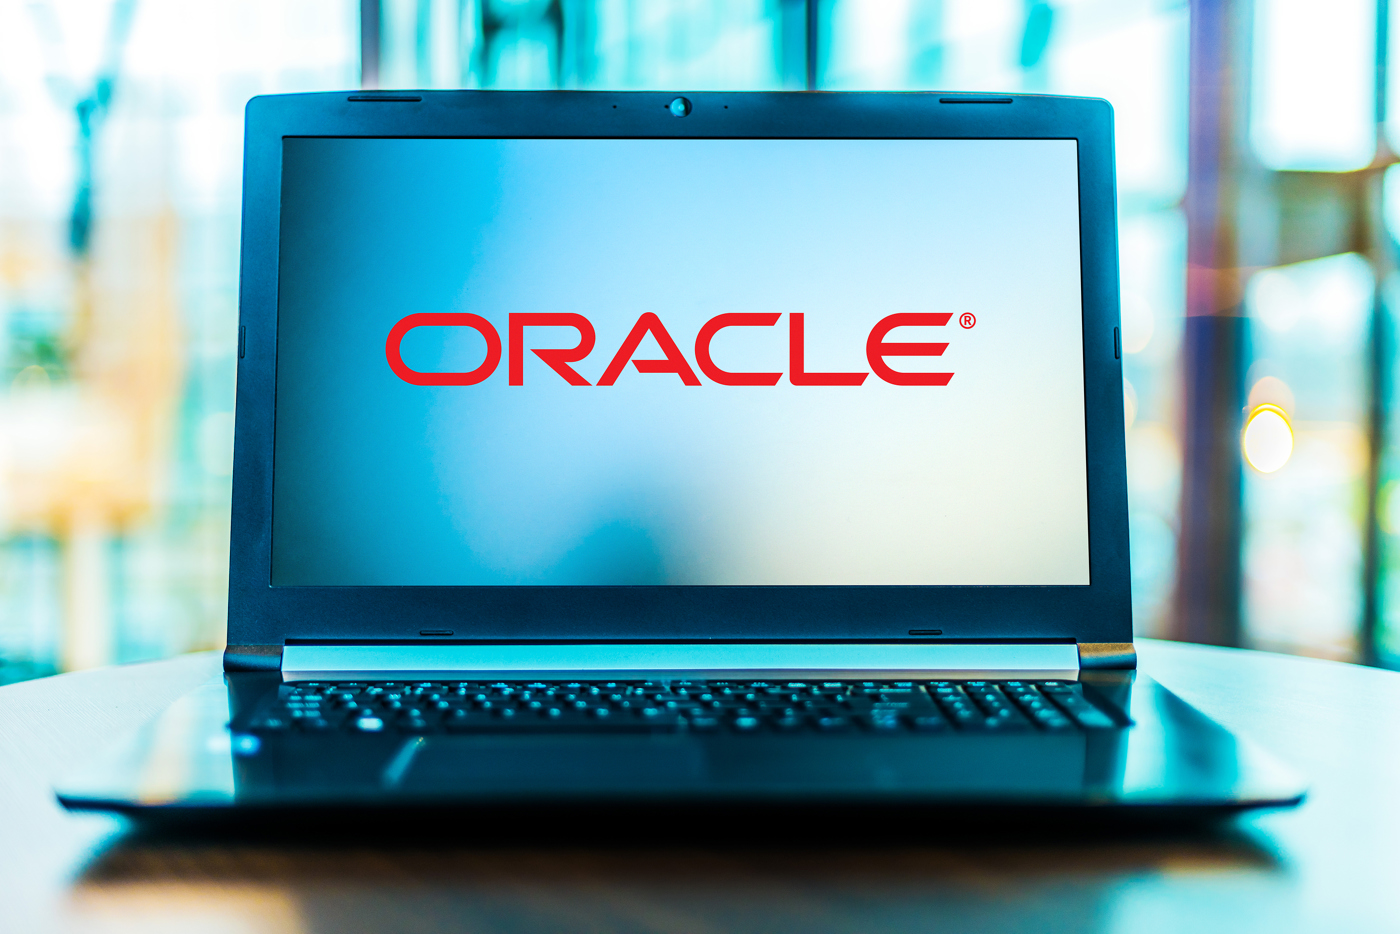 Oracle stock, ORCL stock